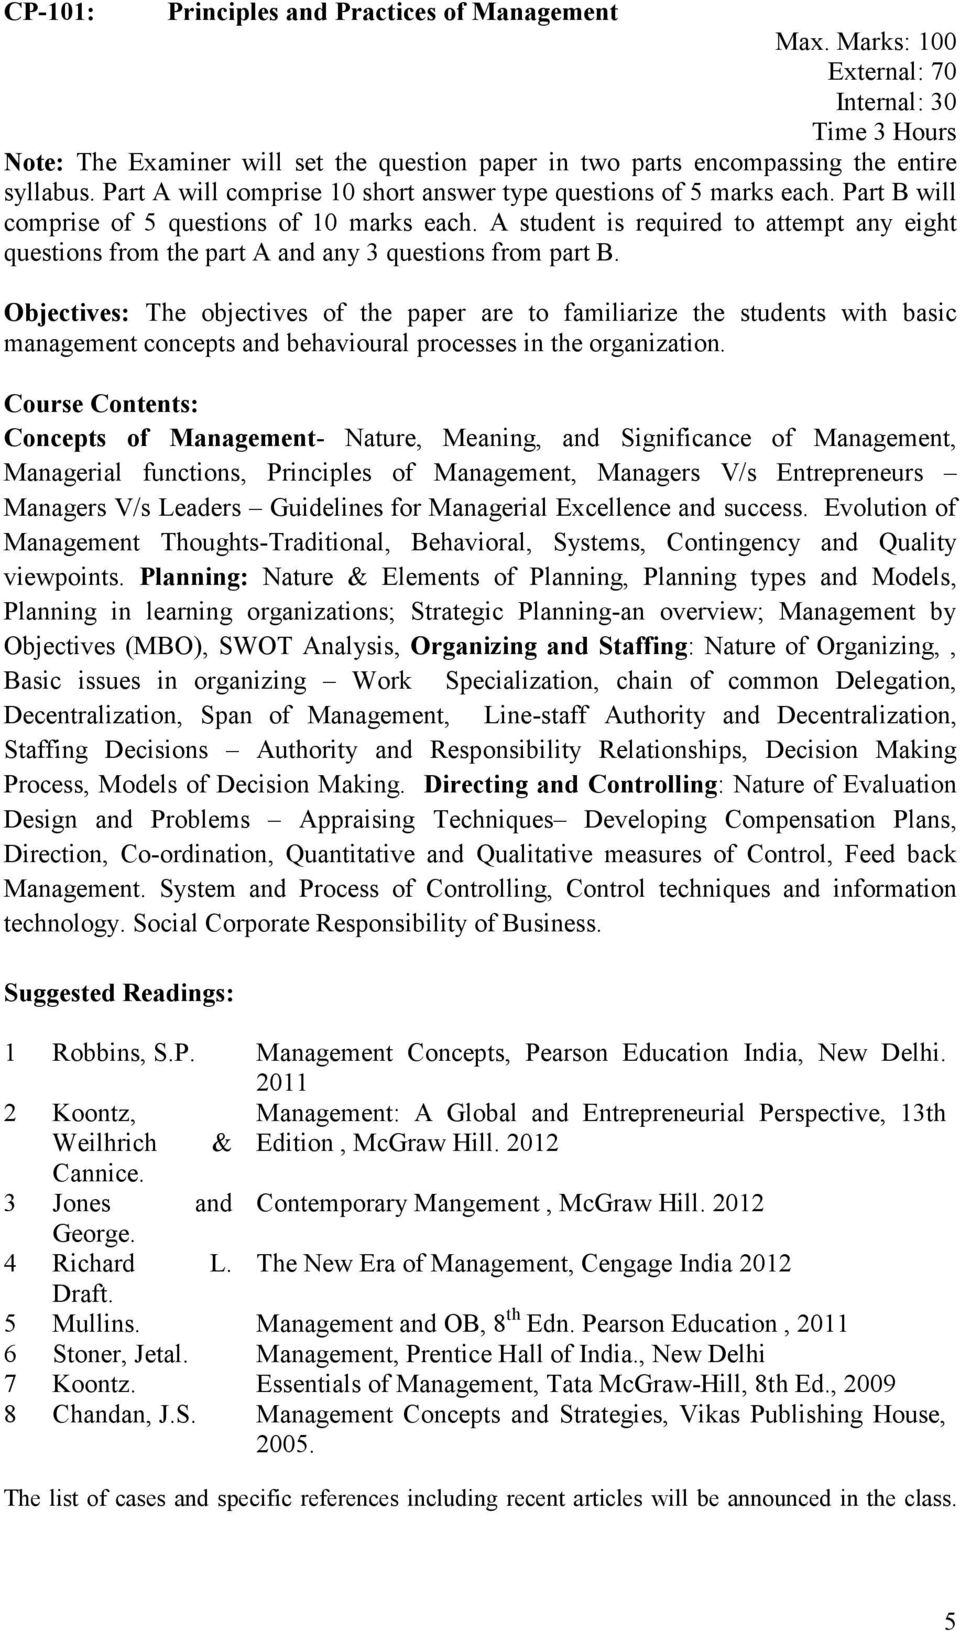 Concepts of Management- Nature, Meaning, and Significance of Management, Managerial functions, Principles of Management, Managers V/s Entrepreneurs Managers V/s Leaders Guidelines for Managerial